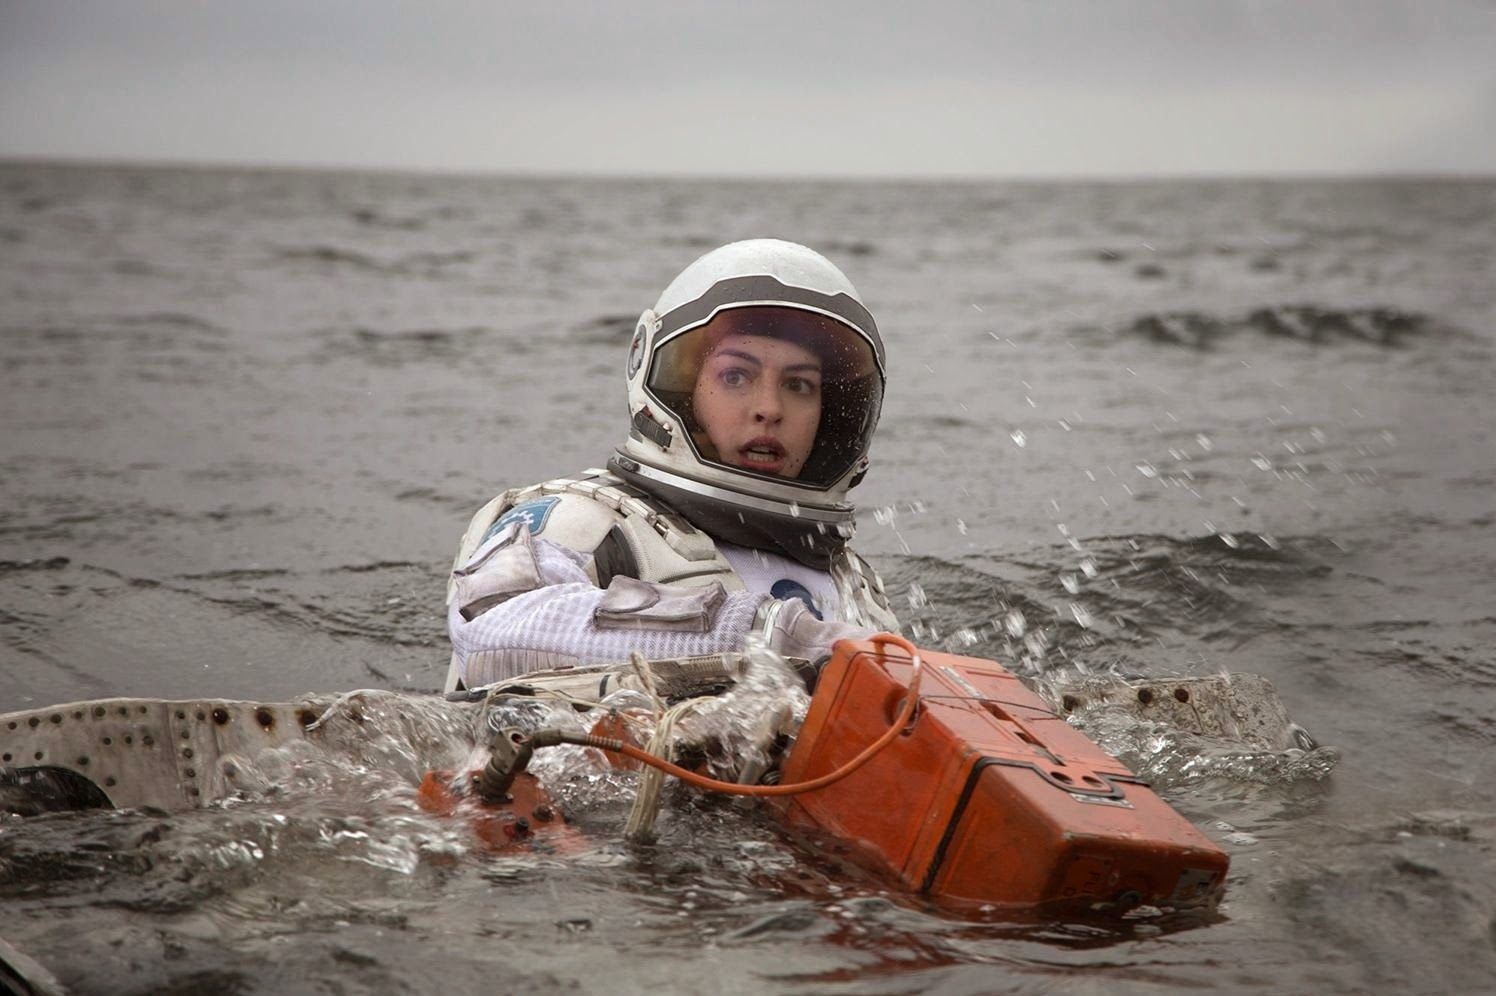 interstellar-filmdoktoru6